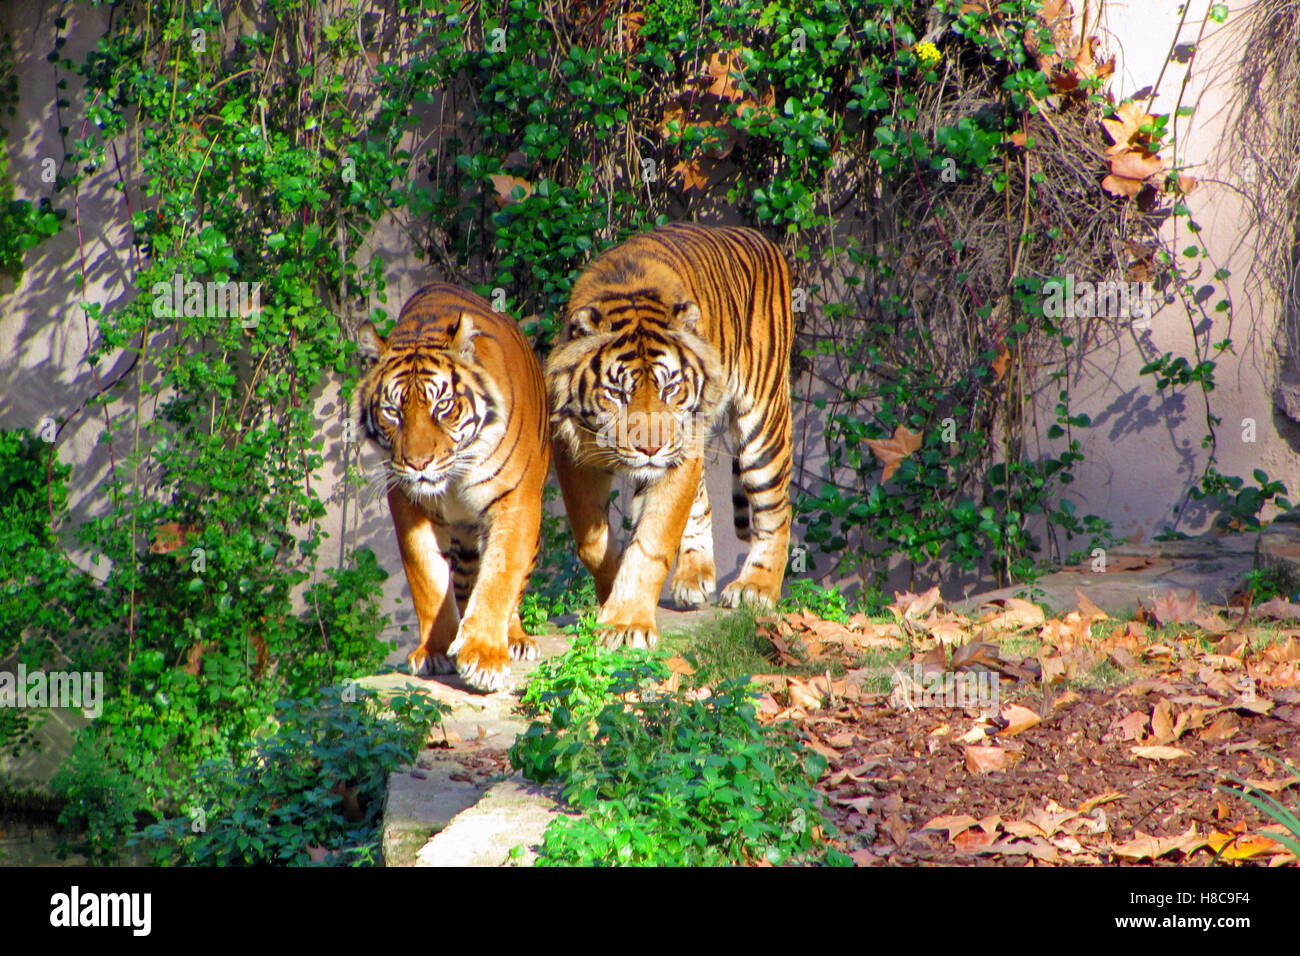 Tigers walking in Barcelona Zoo - Stock Image